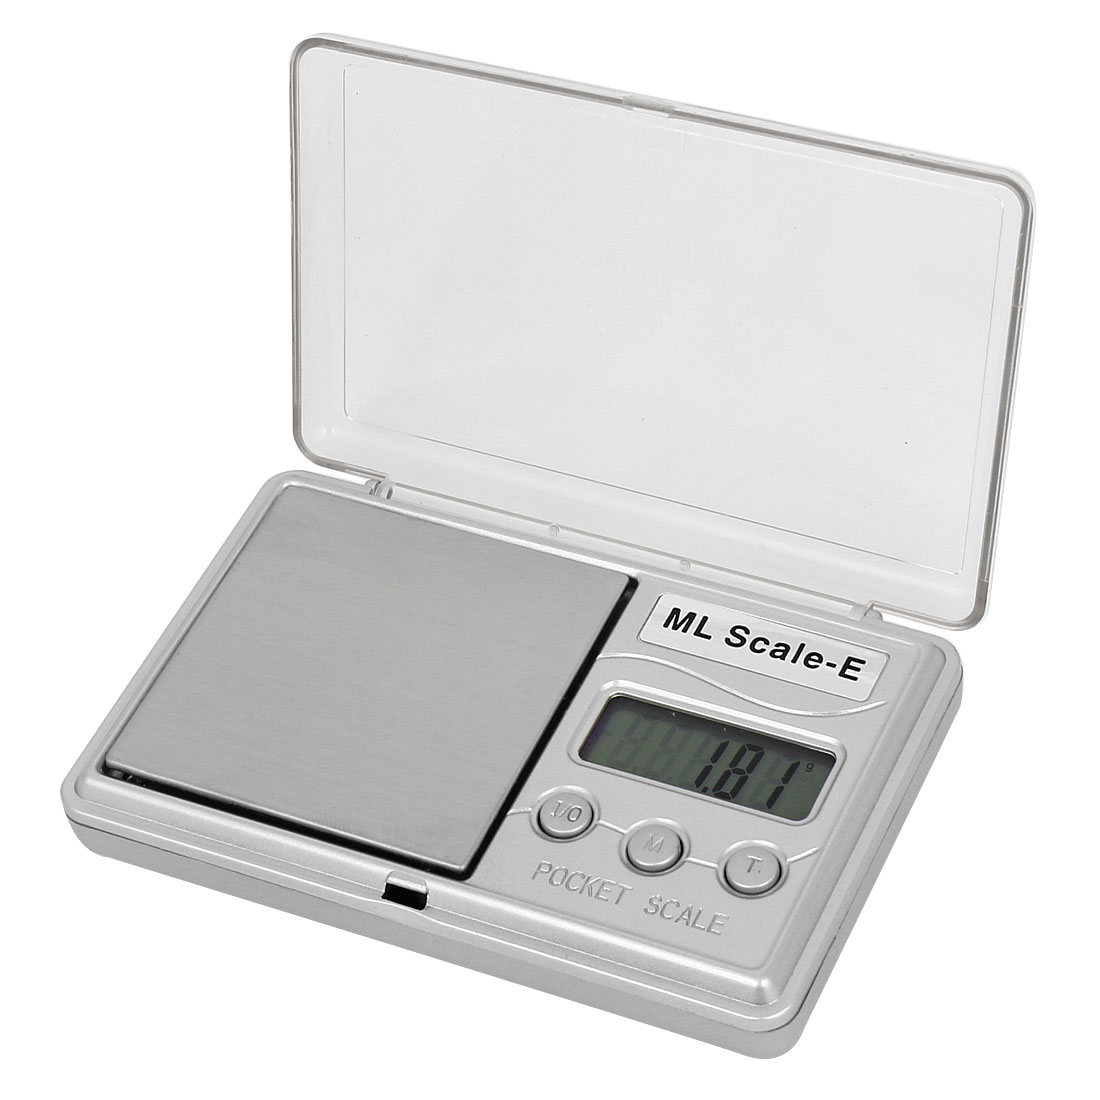 Clear Cover 0.01g x 100g Jewelry Weight Balance Digital Pocket Scale Silver Tone